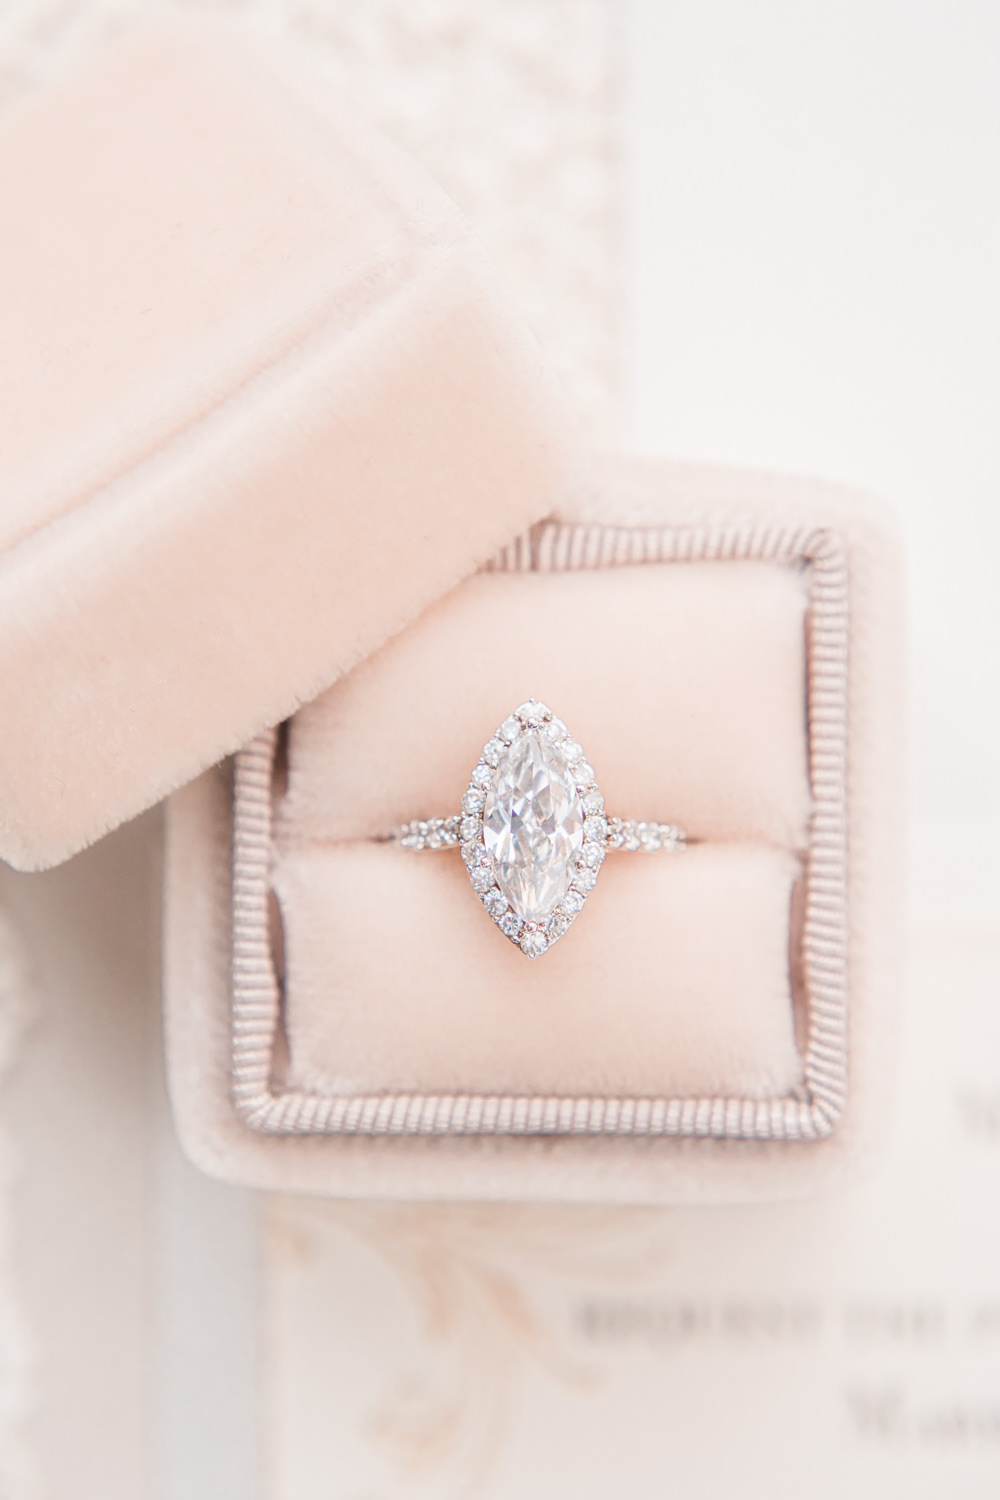 Velvet Ring Box Blush Marquise Diamond Engagement Ring Band Golden Autumnal Wedding Ideas Joanna Briggs Photography